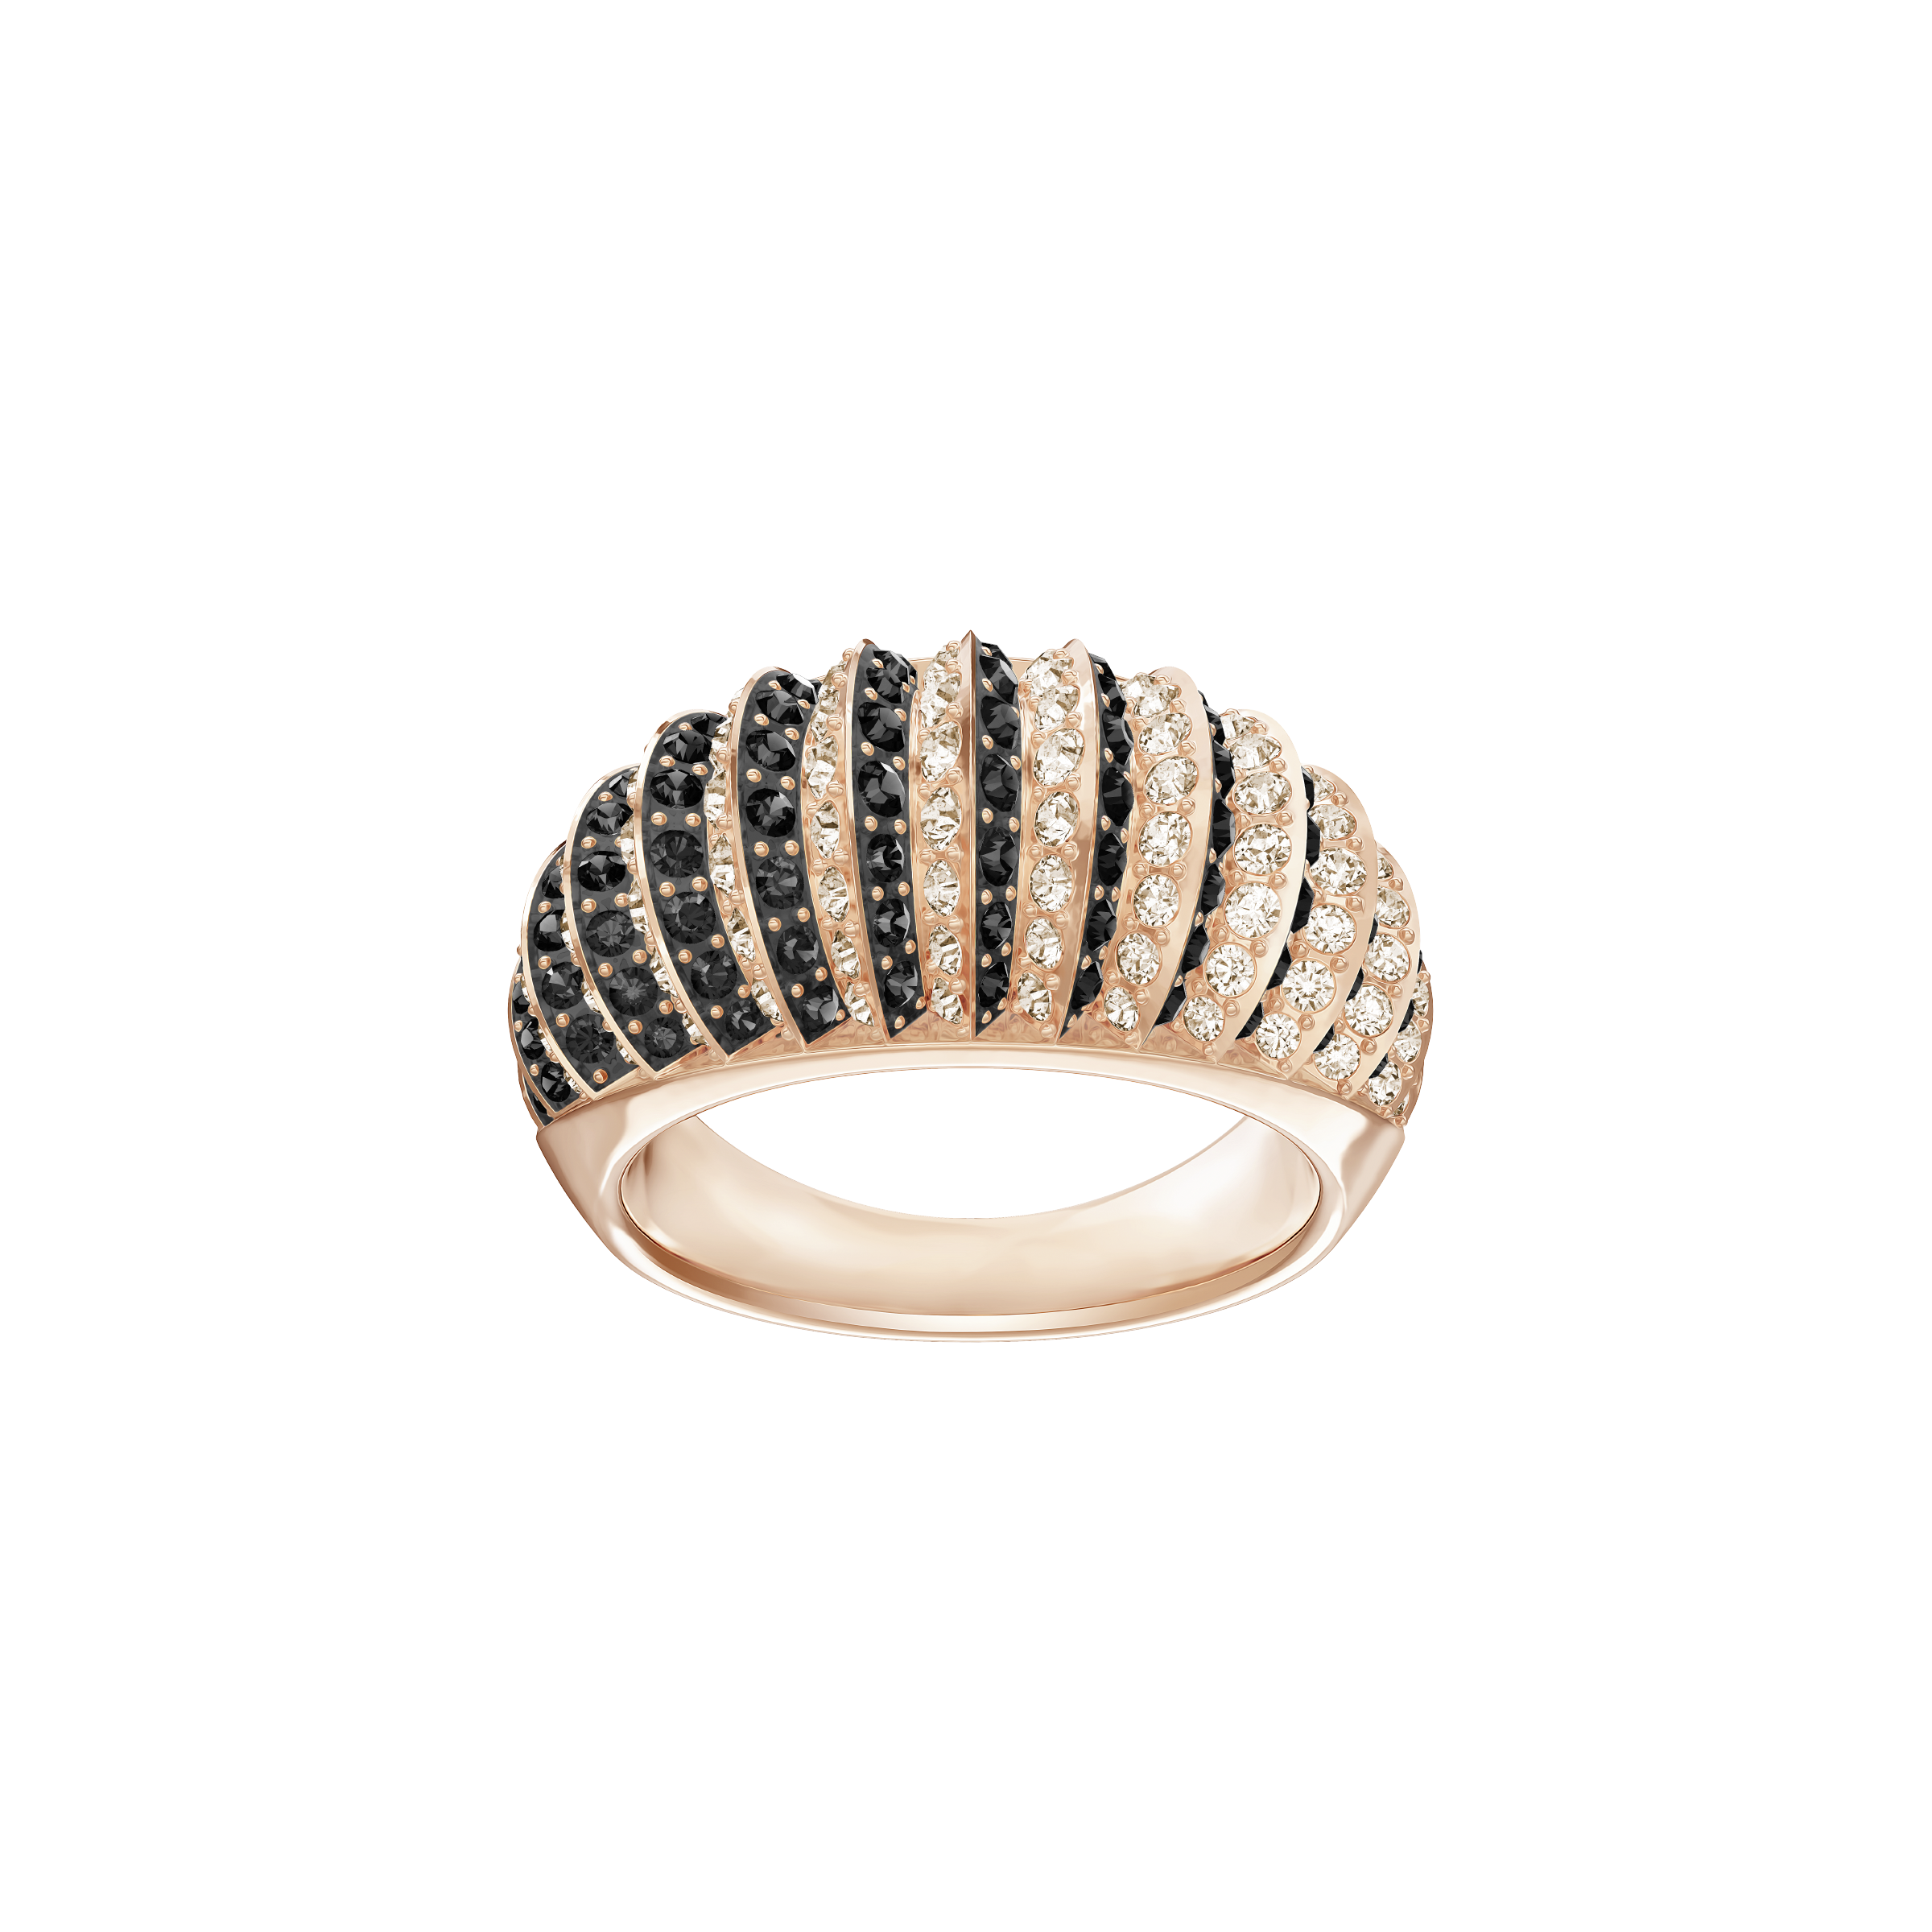 Luxury Domed Ring, Black, Rose Gold Plating